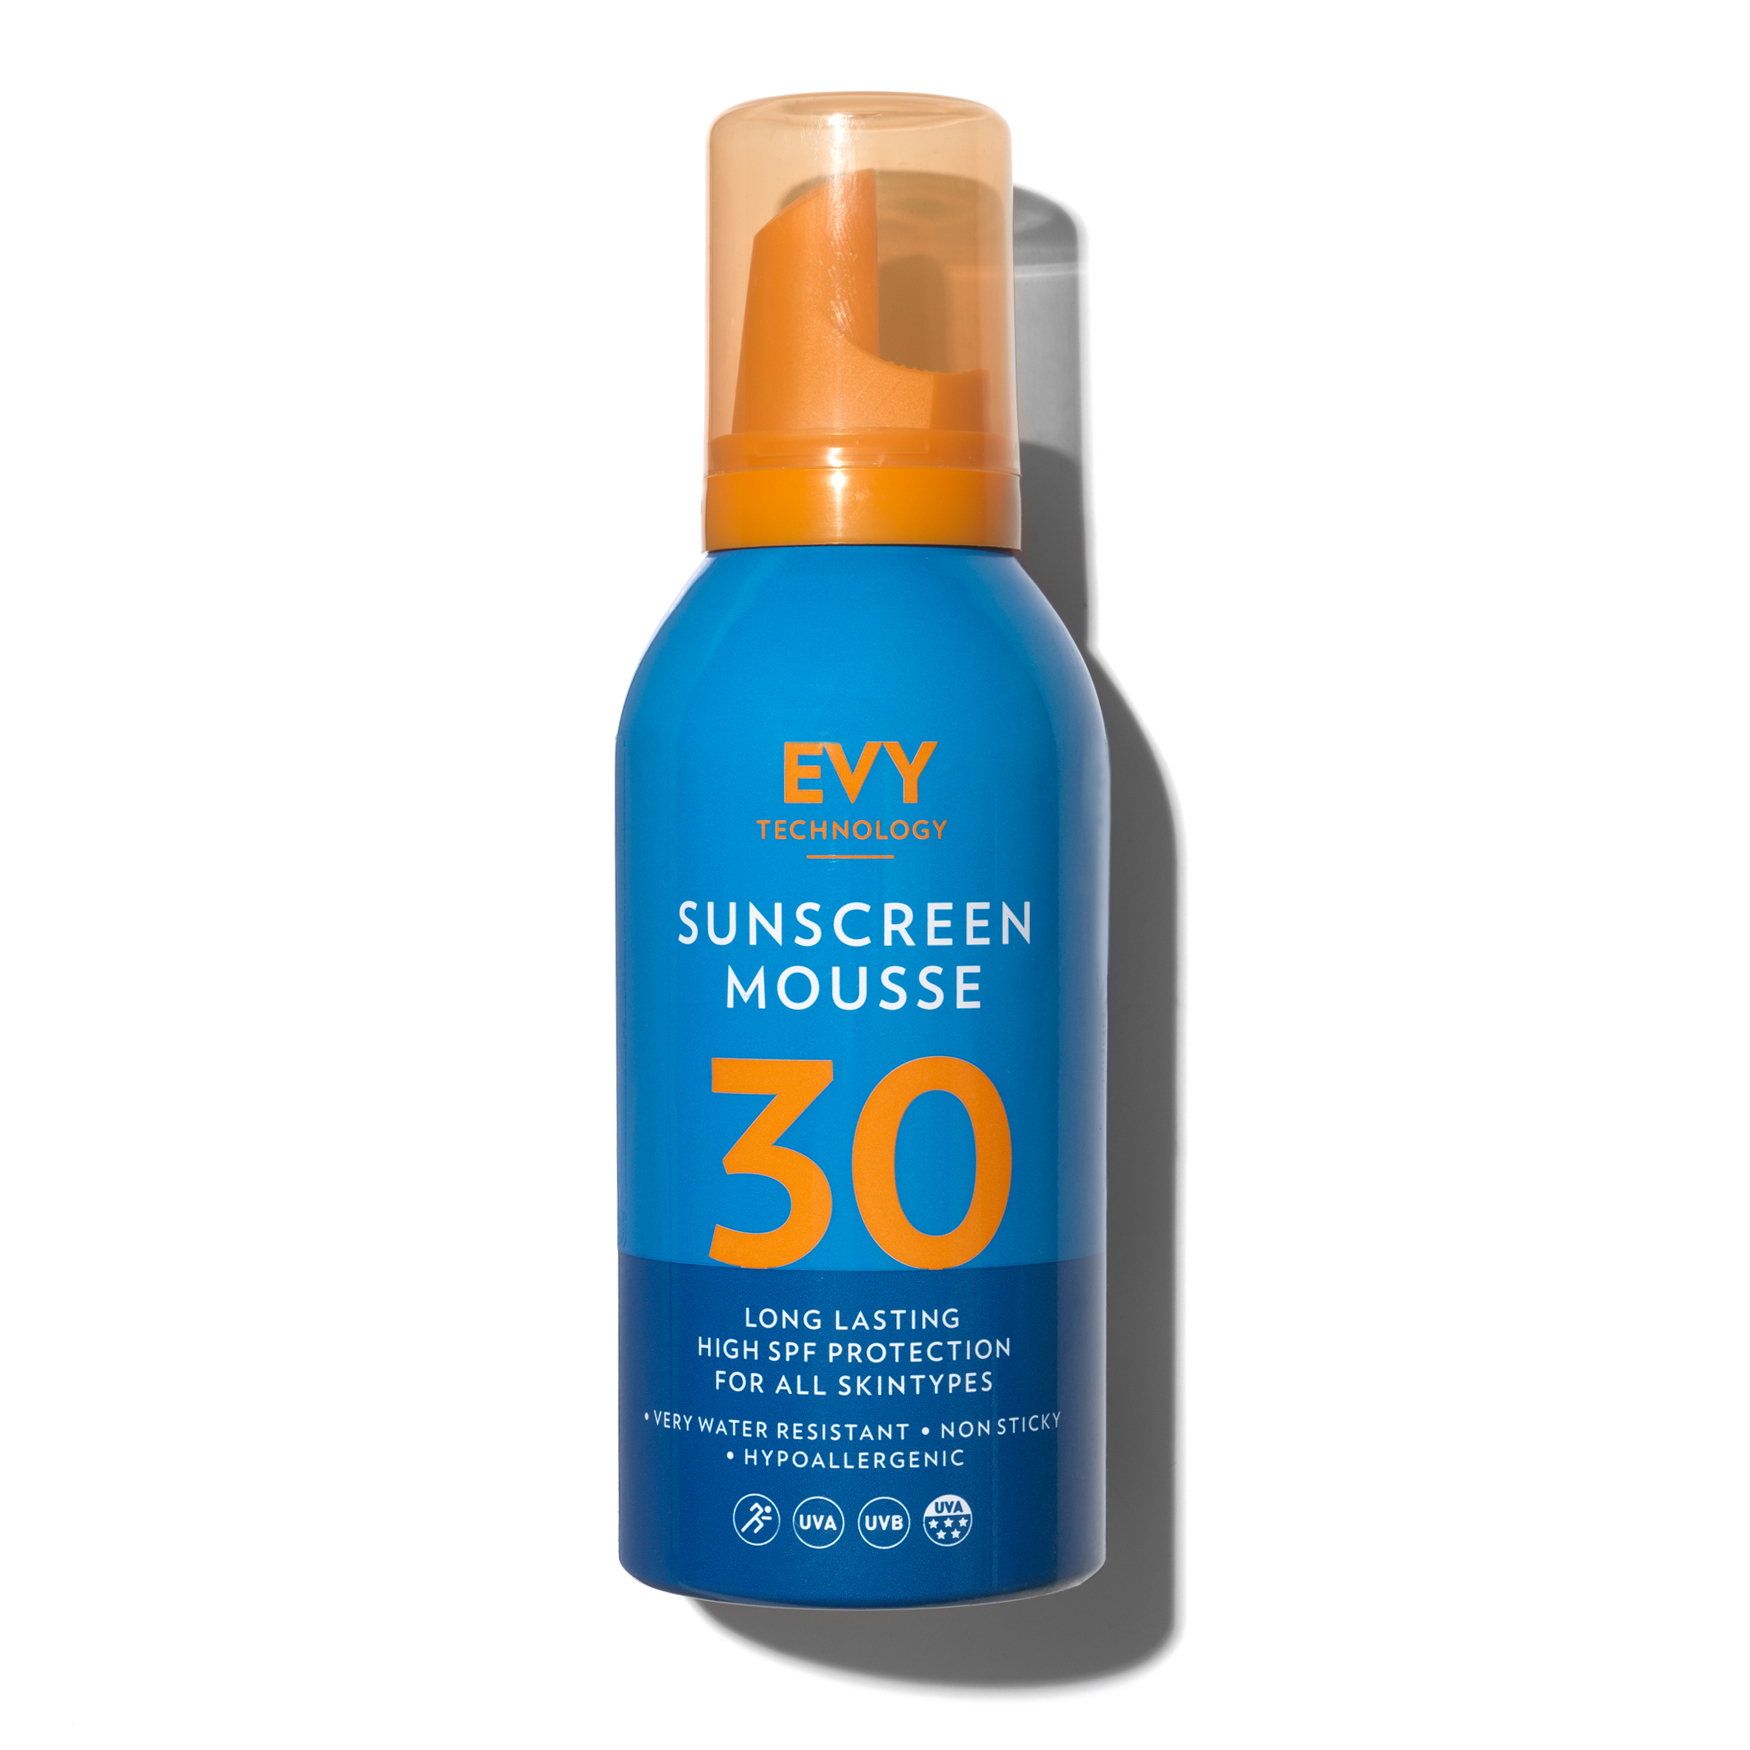 Sunscreen Mousse SPF30, , large